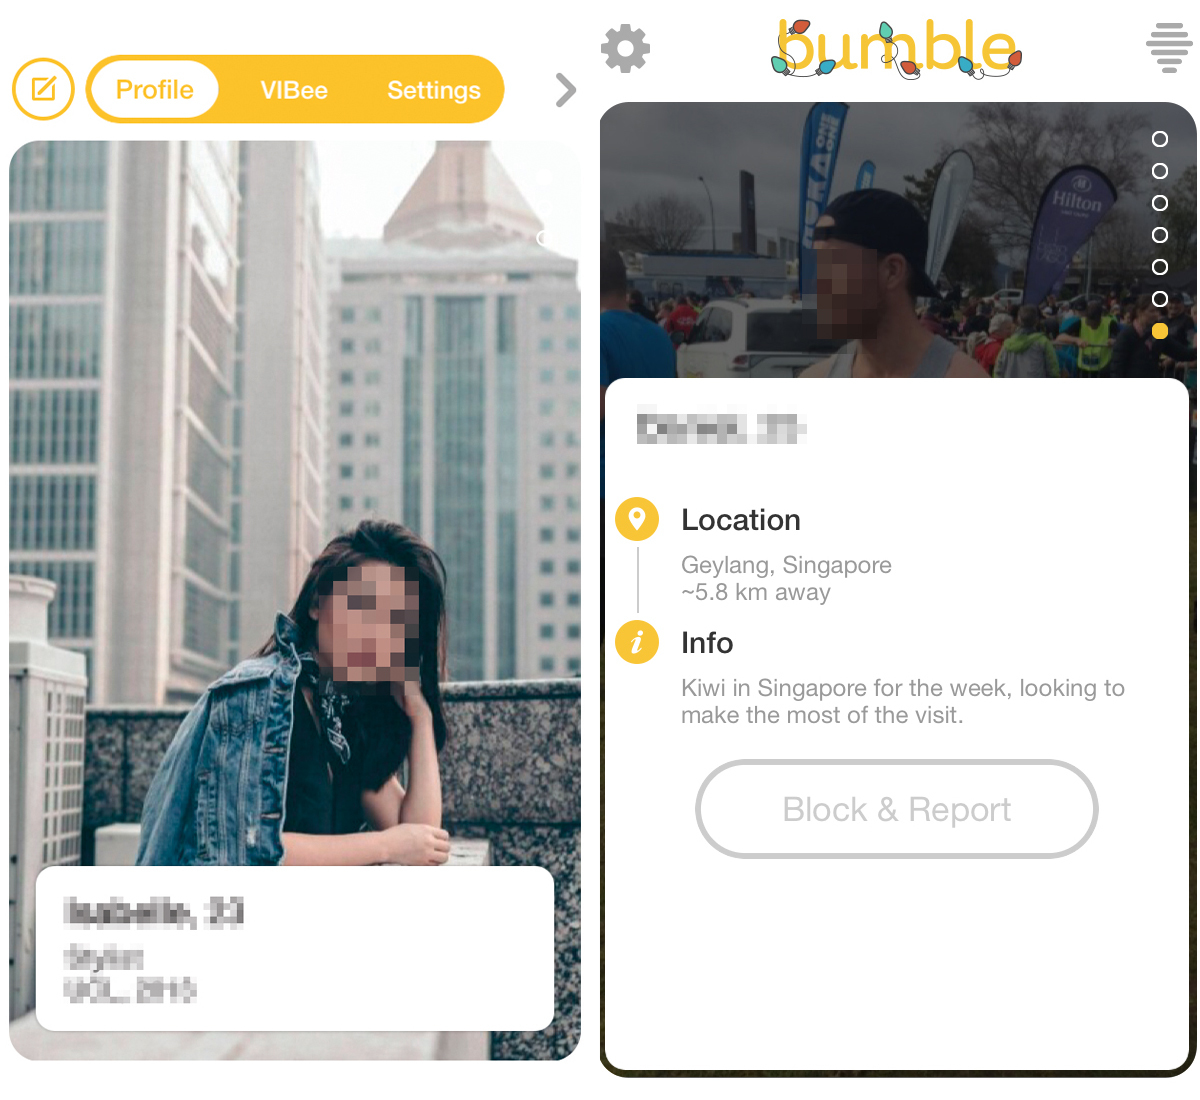 How to deactivate bumble